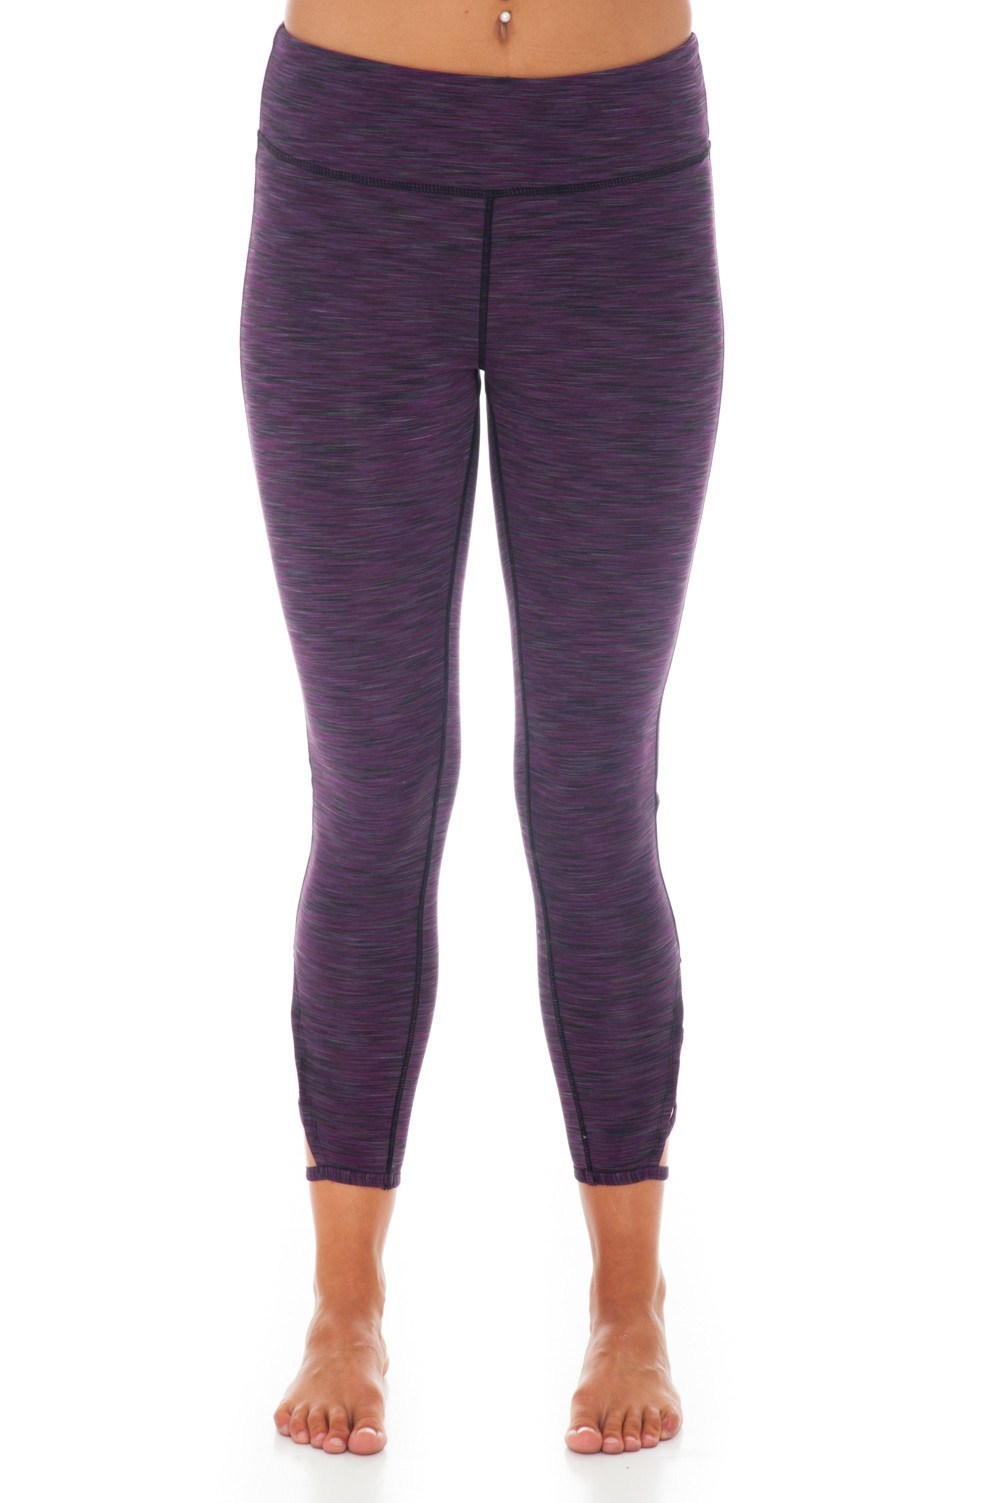 Legging - Criss-Cross Leg - 4